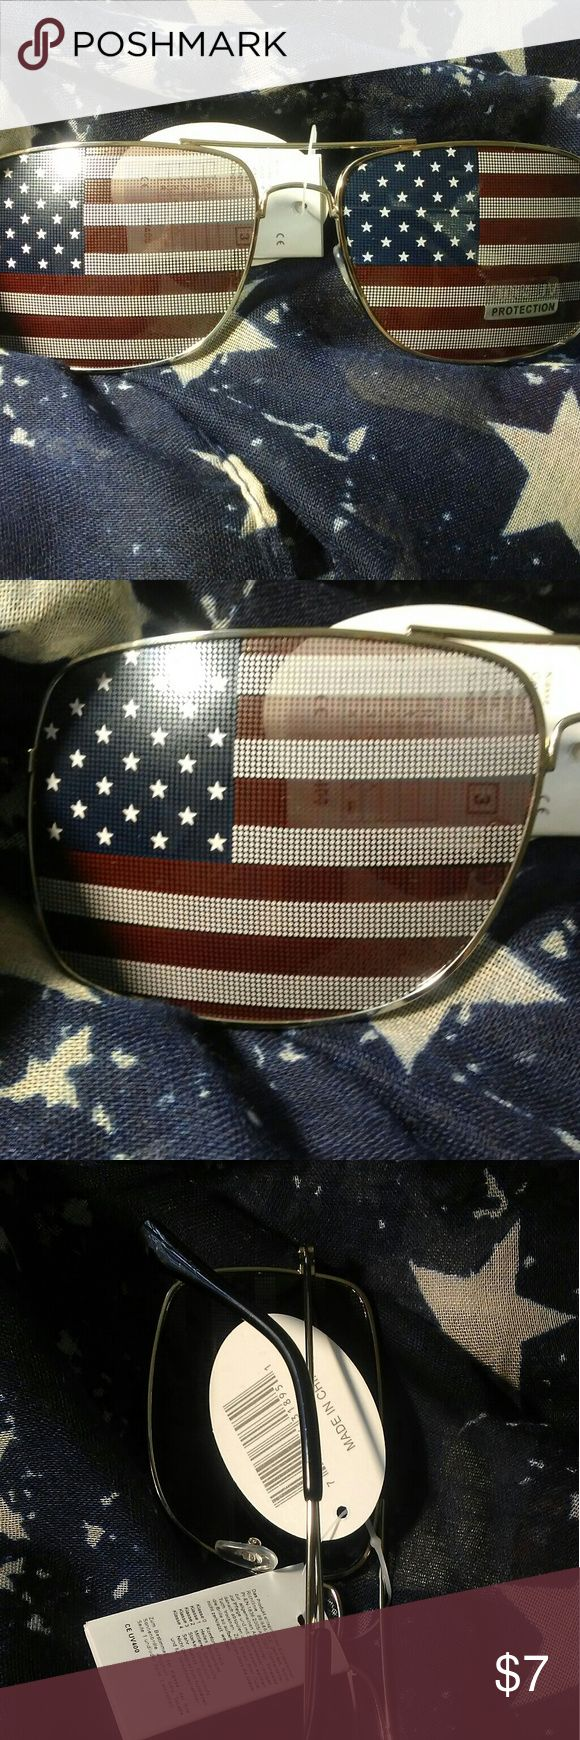 July 4th Patriotic American Flag Sunglasses UV PROTECTION. Not to be used while driving More for fun Lenses are textured meaning you can't see clear out of them. Accessories Sunglasses